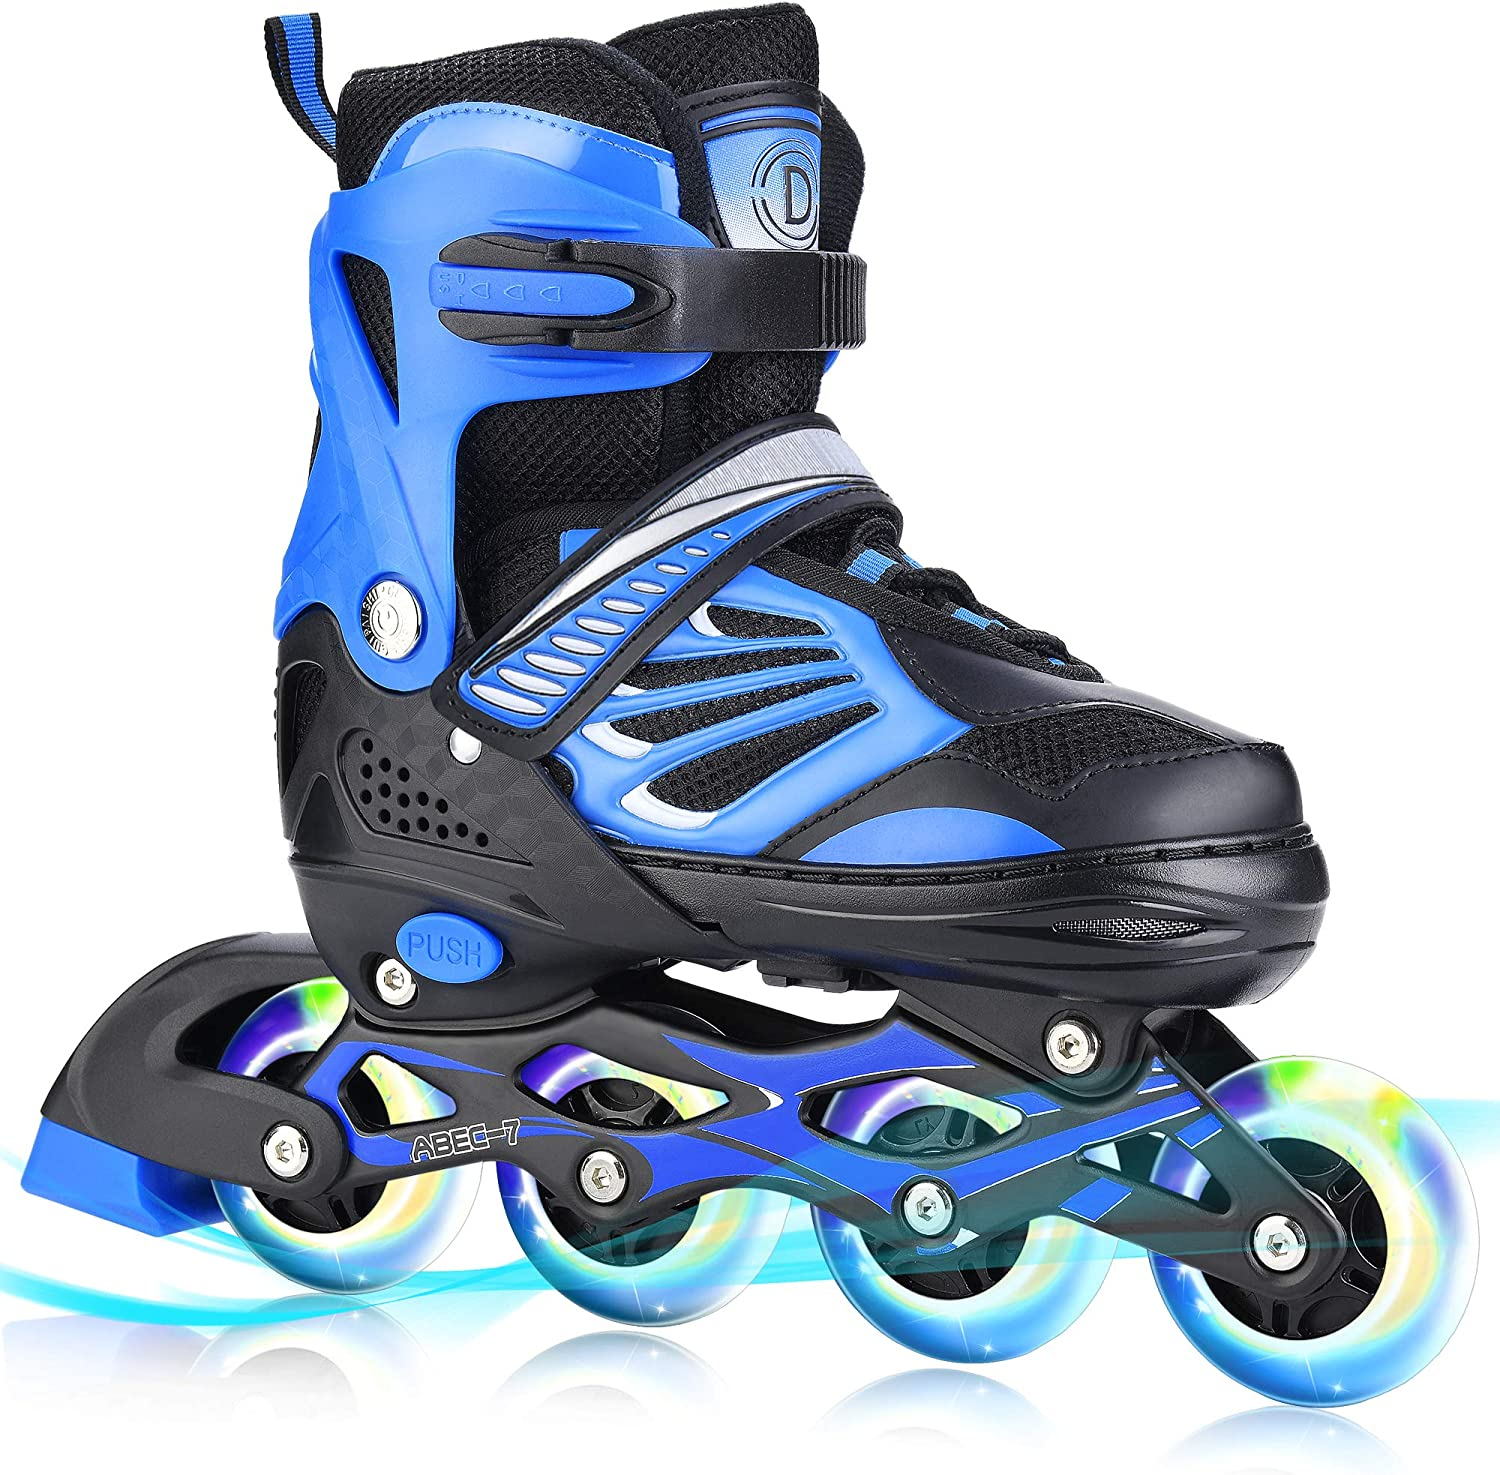 TylooVi Blue Ranking TOP15 Adjustable Inline Skates Omaha Mall for and Boys Girls Women w